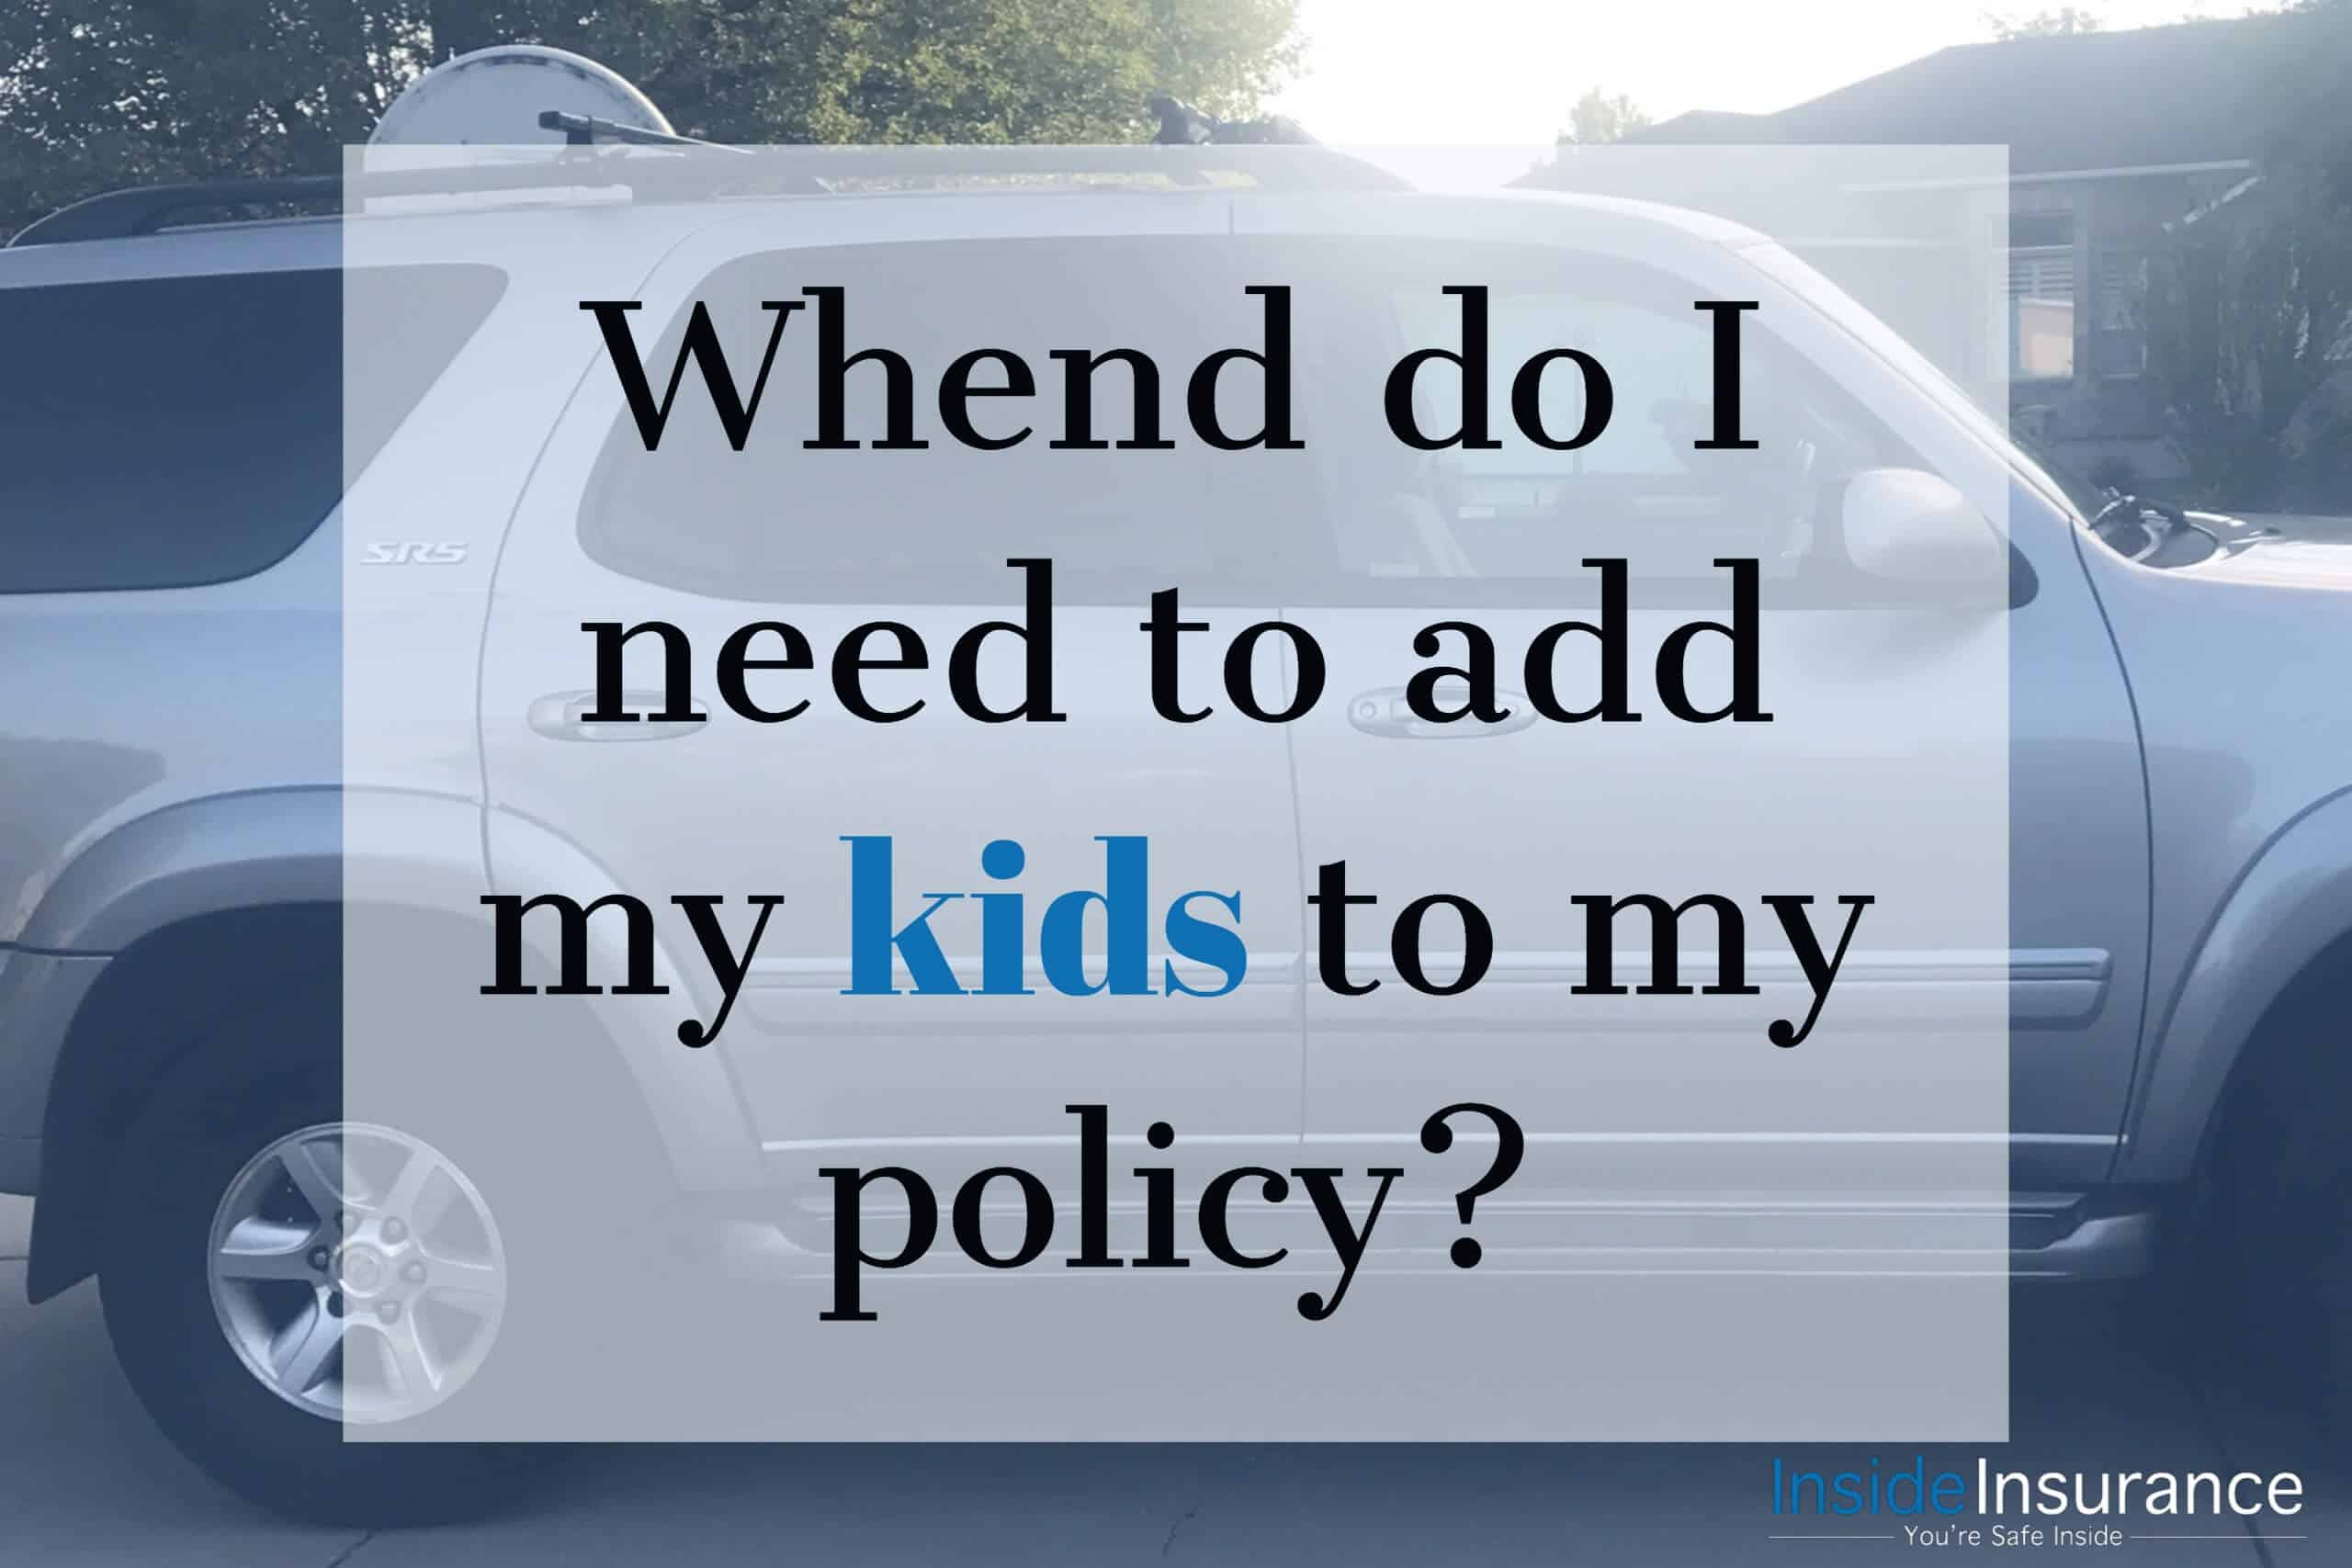 When do I need to add my kids to my policy?